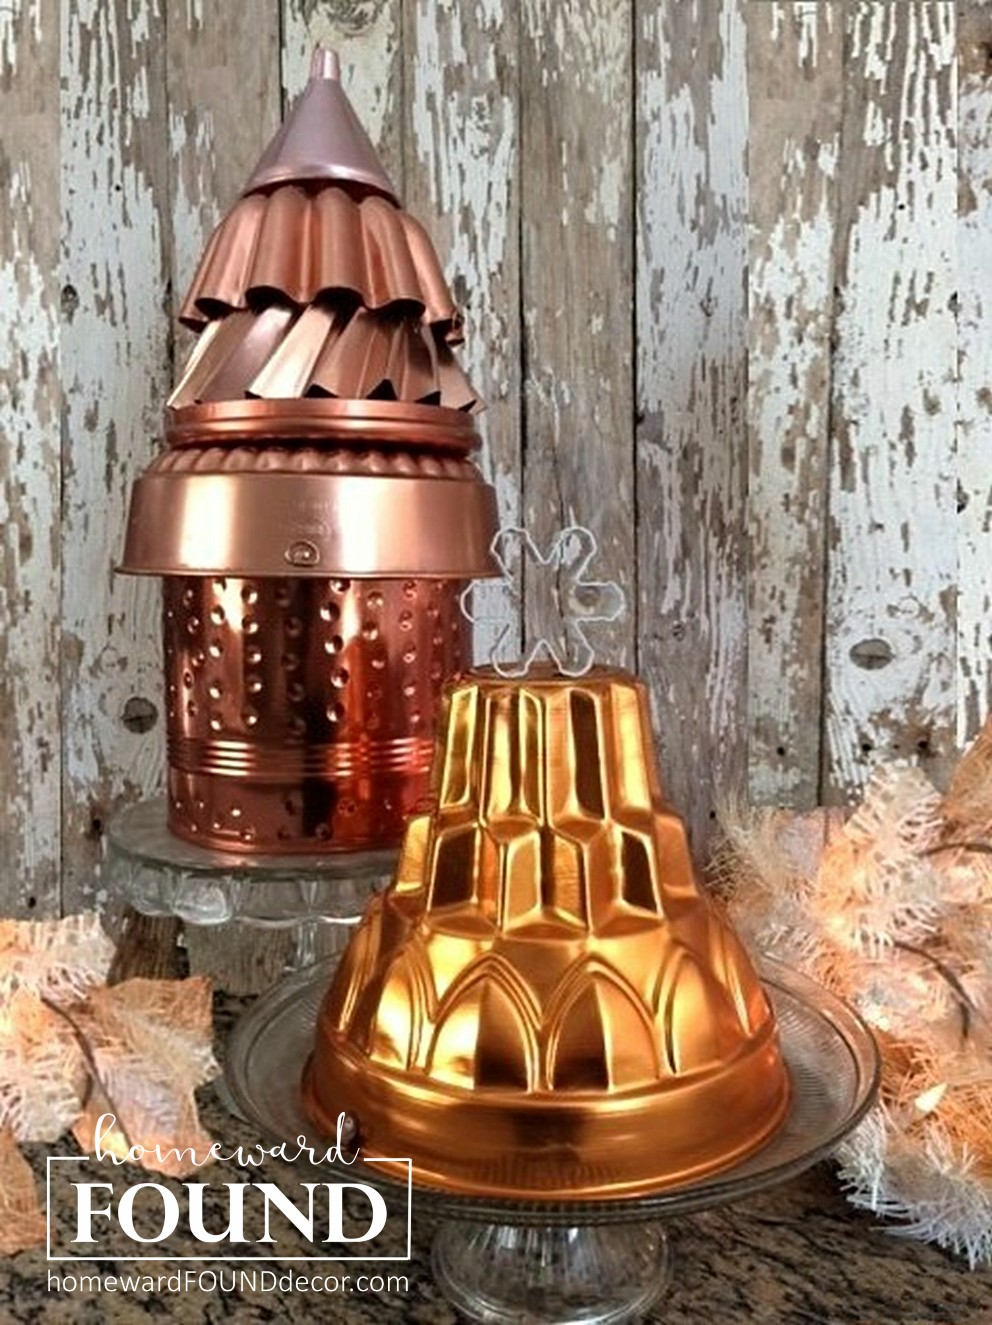 Cooper jello mould Christmas trees by Homeward Found, featured on Funky Junk Interiors